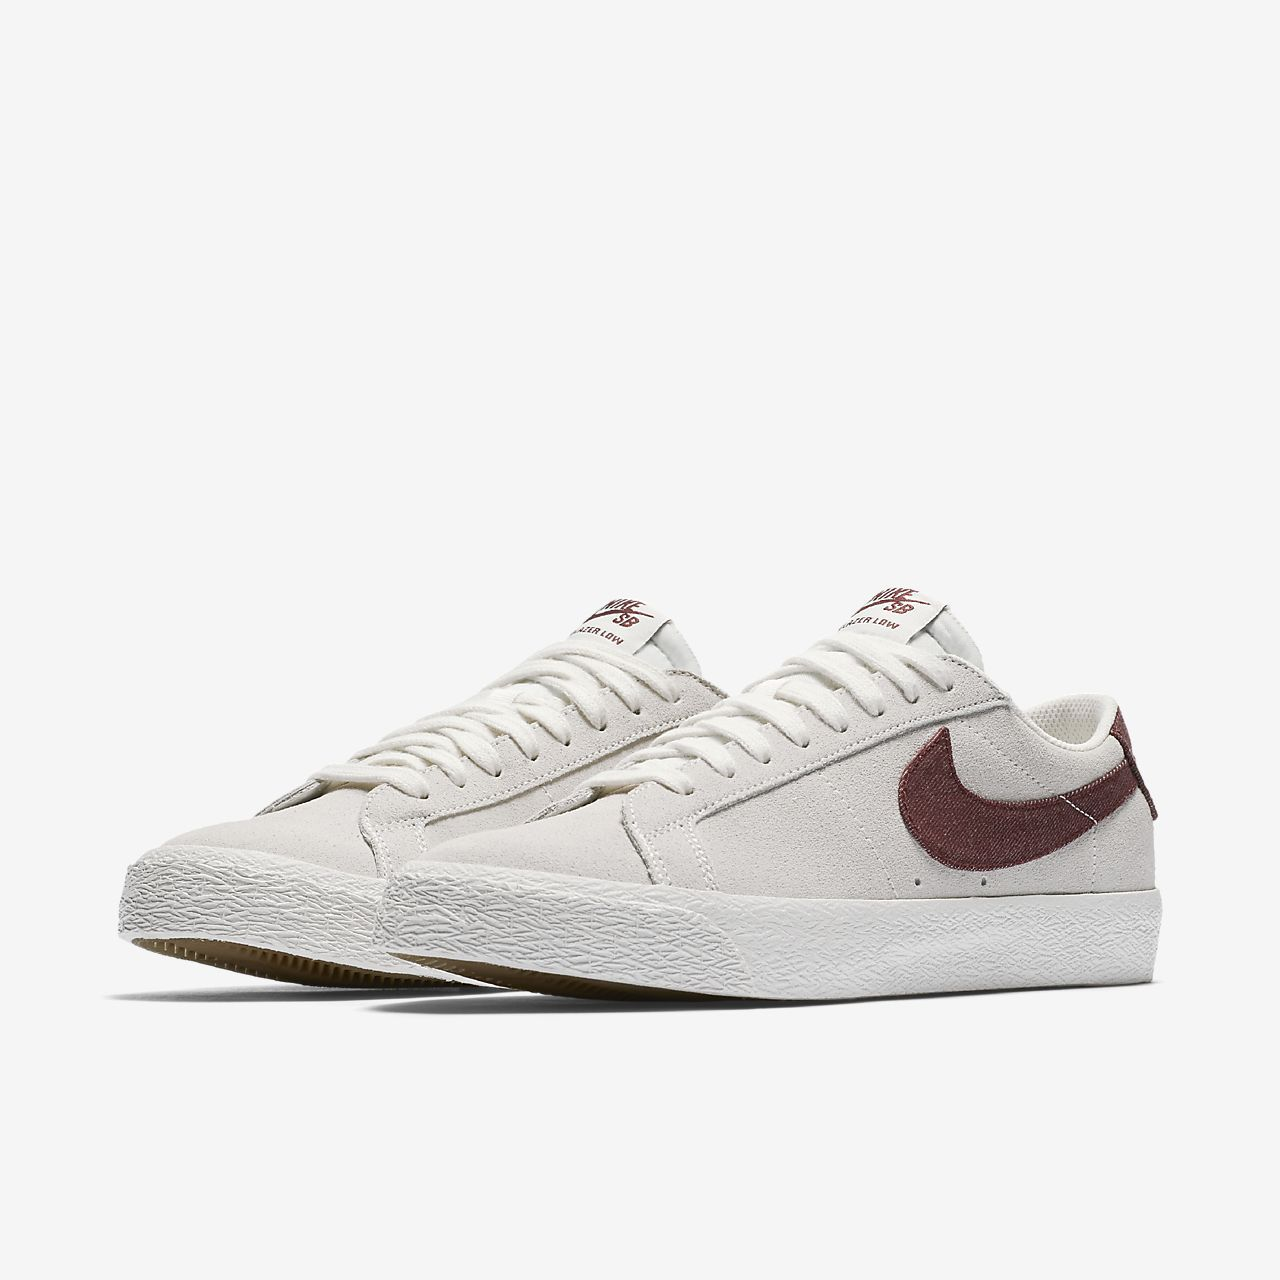 9d415f362017 Discover ideas about Cream Shoes. Nike SB Ishod Wair Zoom Blazer Chukka XT  QS Men s Skateboarding ...